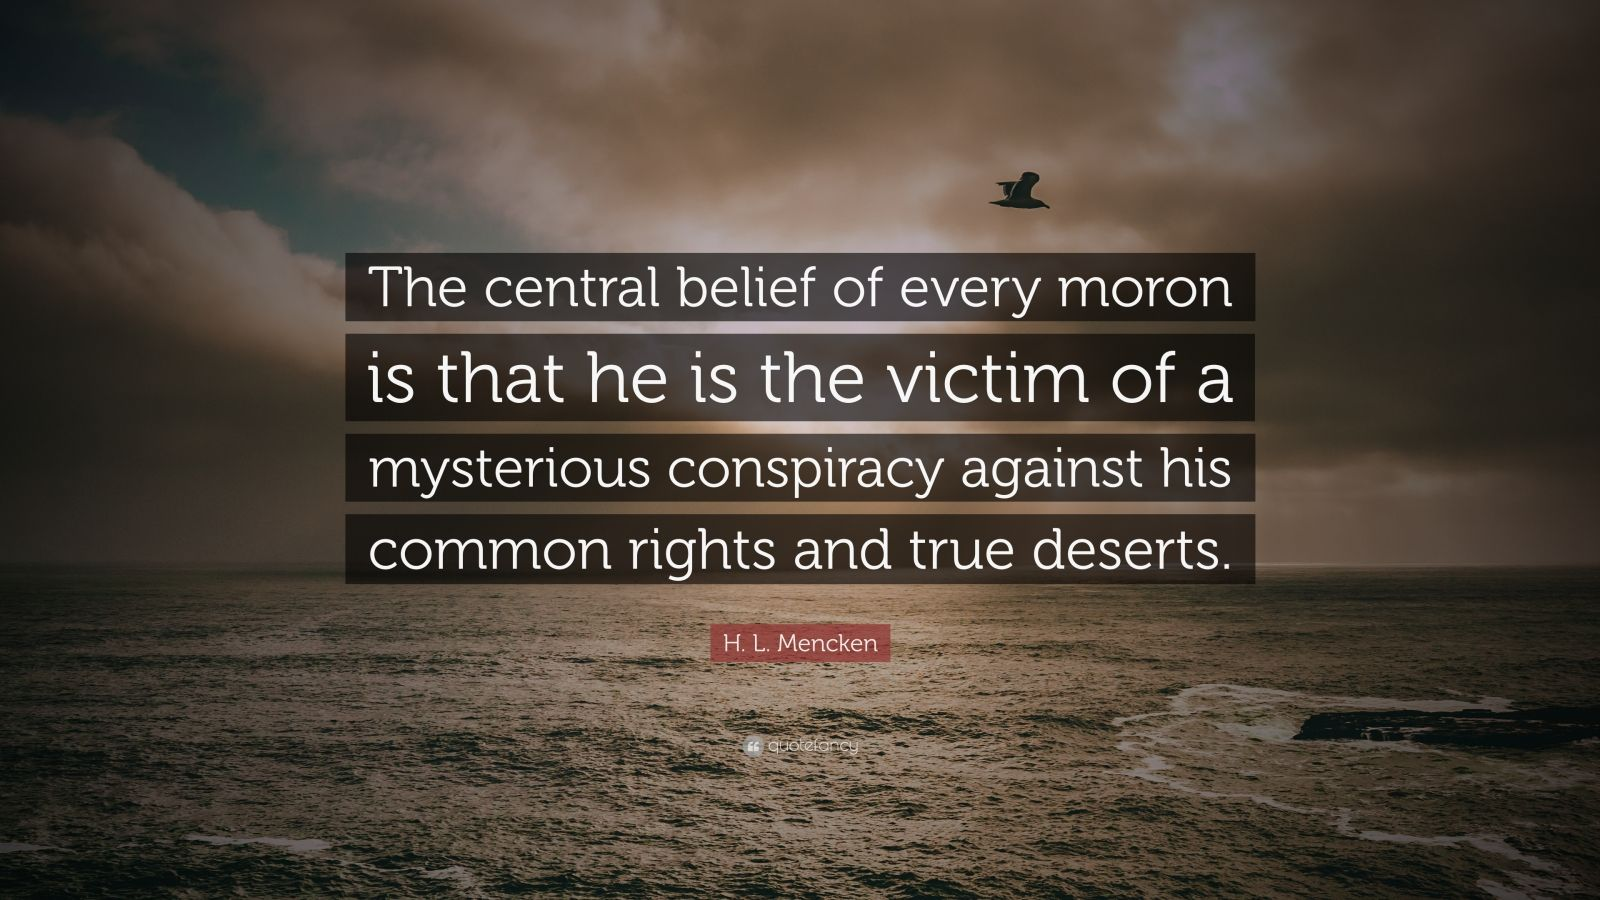 "H. L. Mencken Quote: ""The central belief of every moron is that he is the victim of a mysterious conspiracy against his common rights and true deserts."""